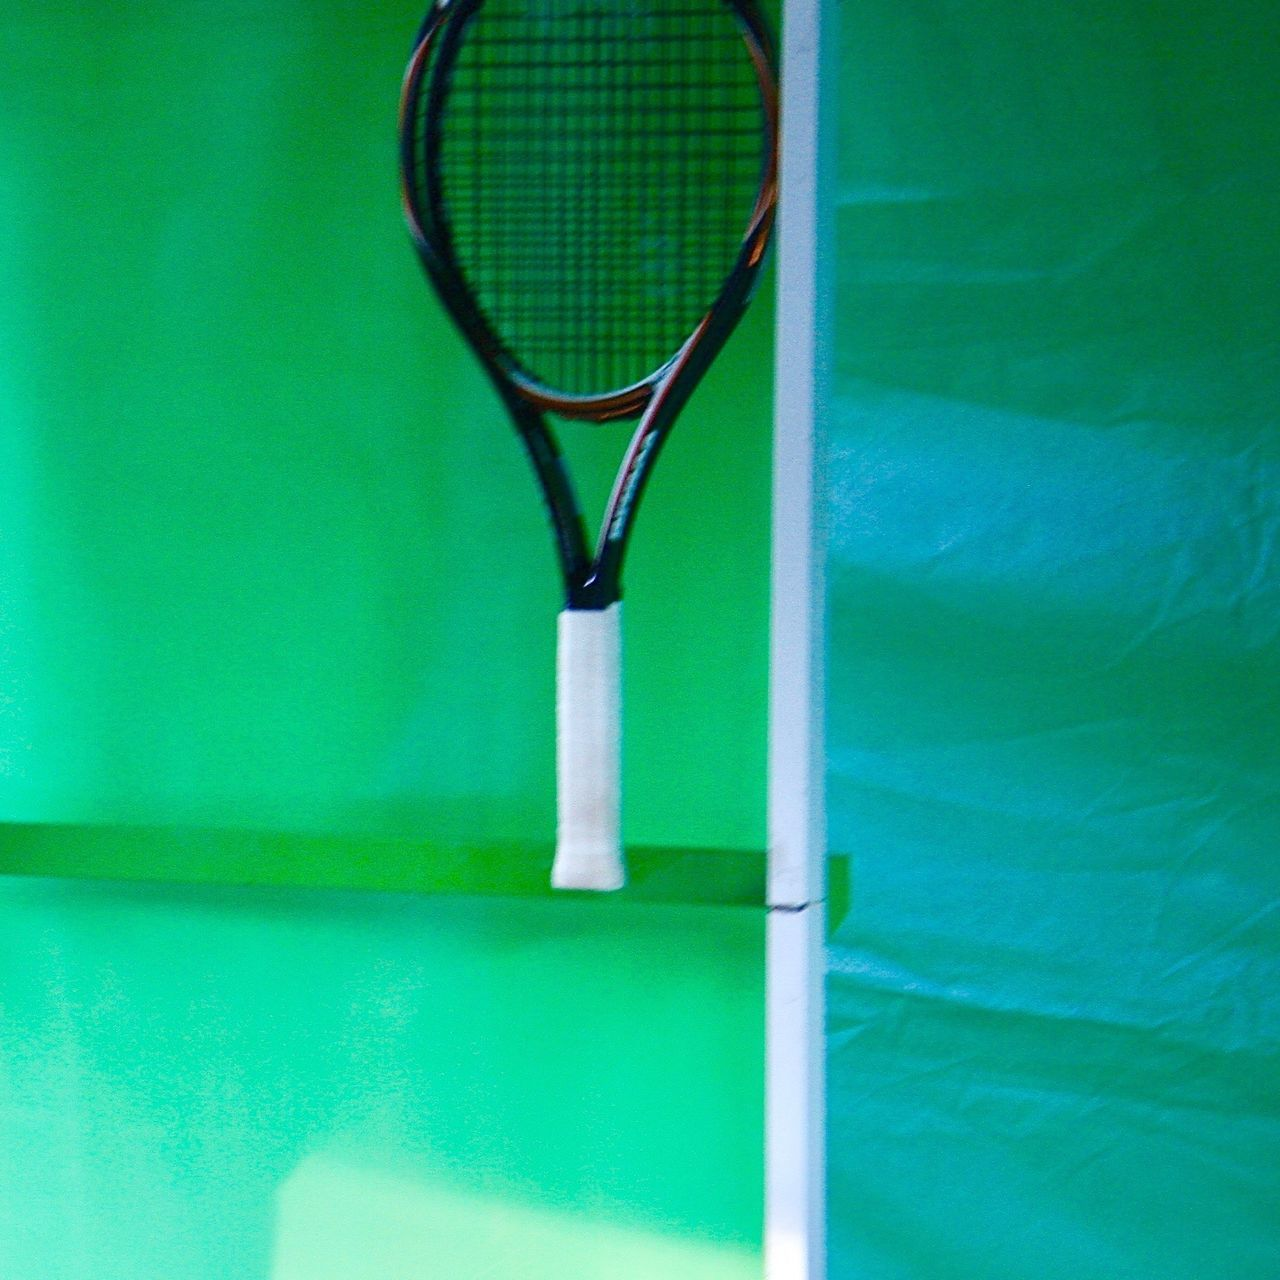 Green - green - green and a tennis racket ... Tennis Green Color Greenery Sport Display Close-up Racket Sport Indoors  Abstract Simplicity Minimalism Fine Art Color Image Graphic Design Leisure Activity Activity Sports Equipment Pantone Colors By GIZMON